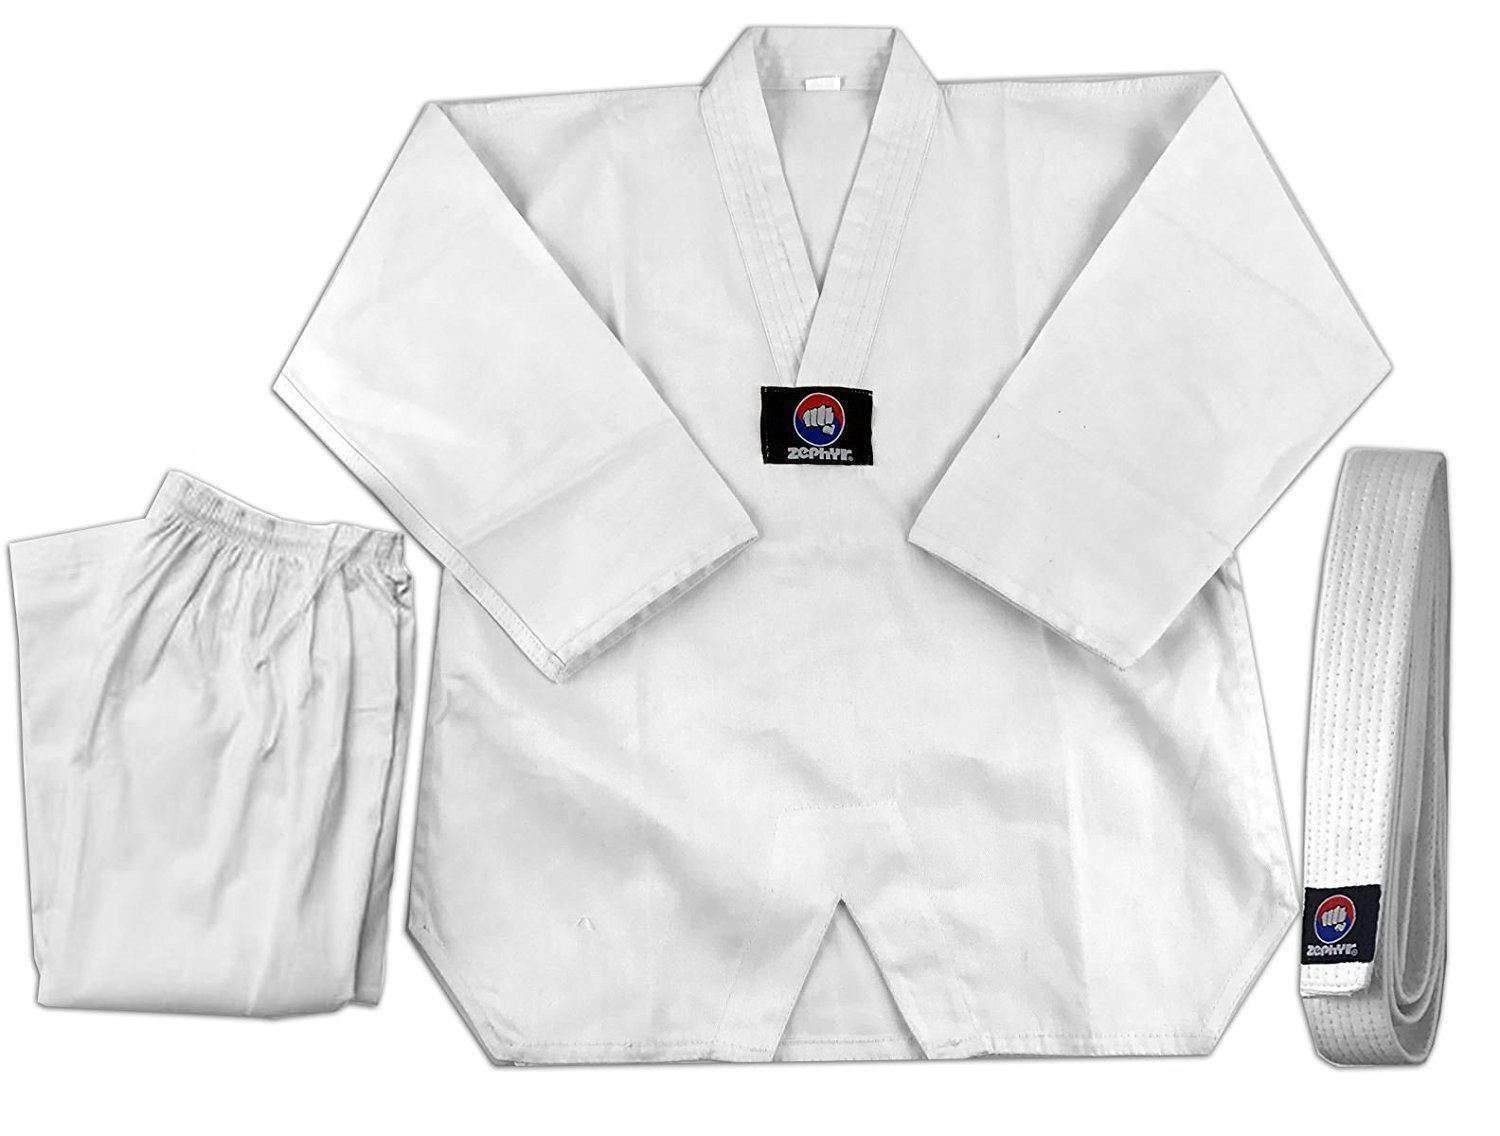 CLEARANCE - Zephyr Tae Kwon Do Gi Student Uniform with Belt - White - 5 - OPEN BOX